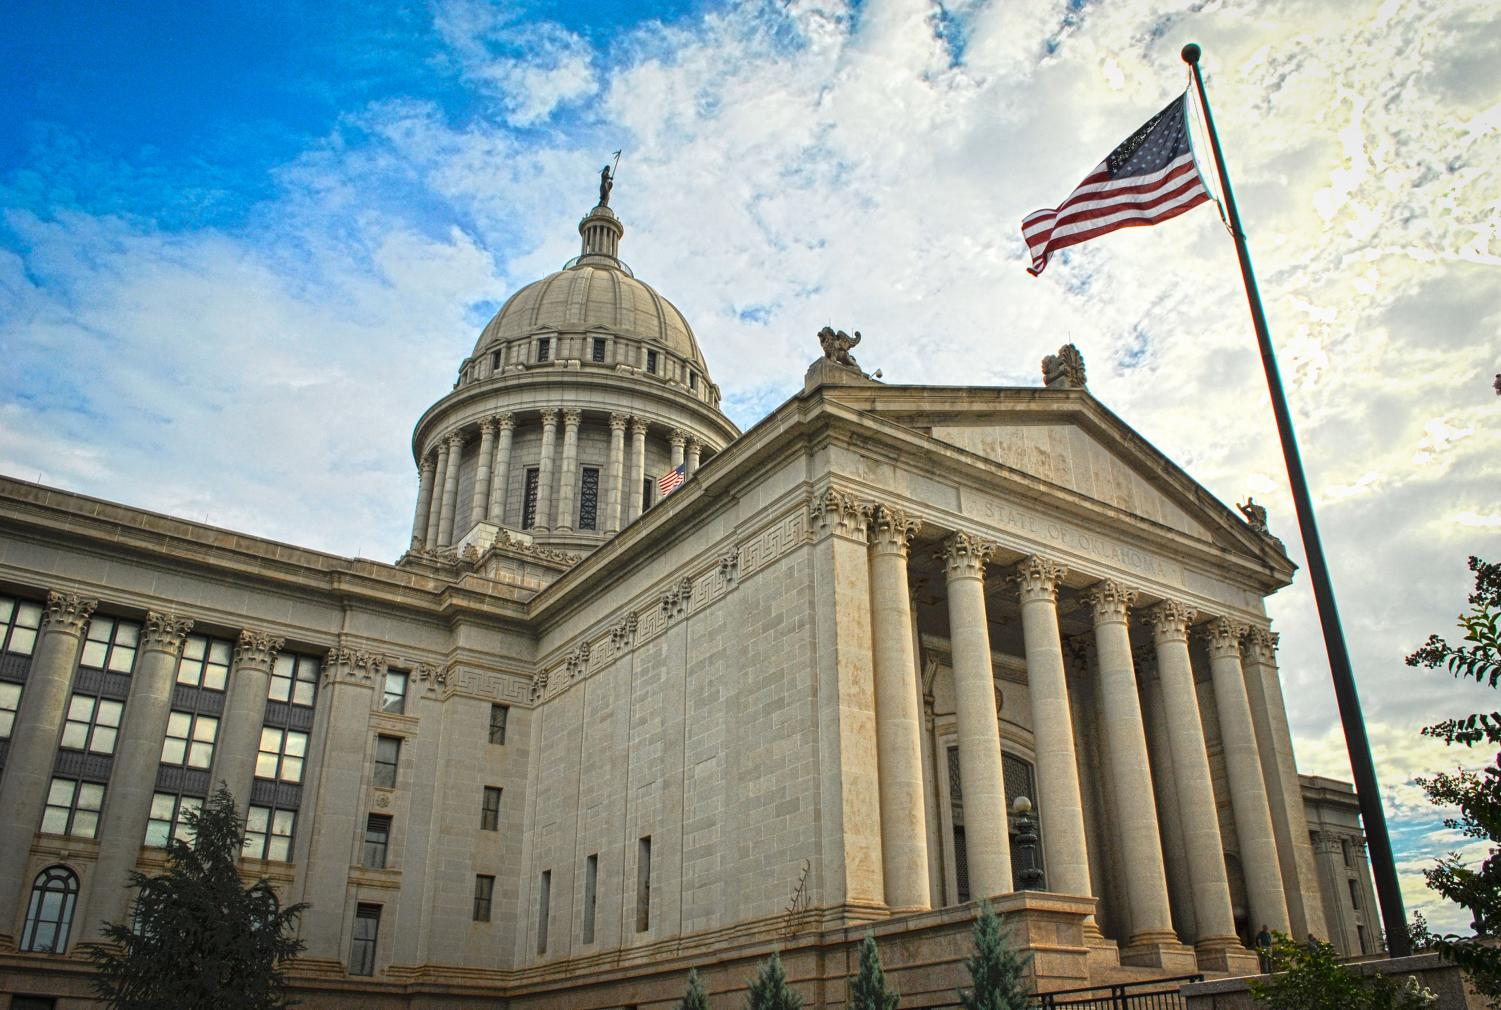 Oklahoma State Capitol, 22nd St. and Lincoln Boulevard Oklahoma City https://creativecommons.org/licenses/by-sa/3.0/deed.en